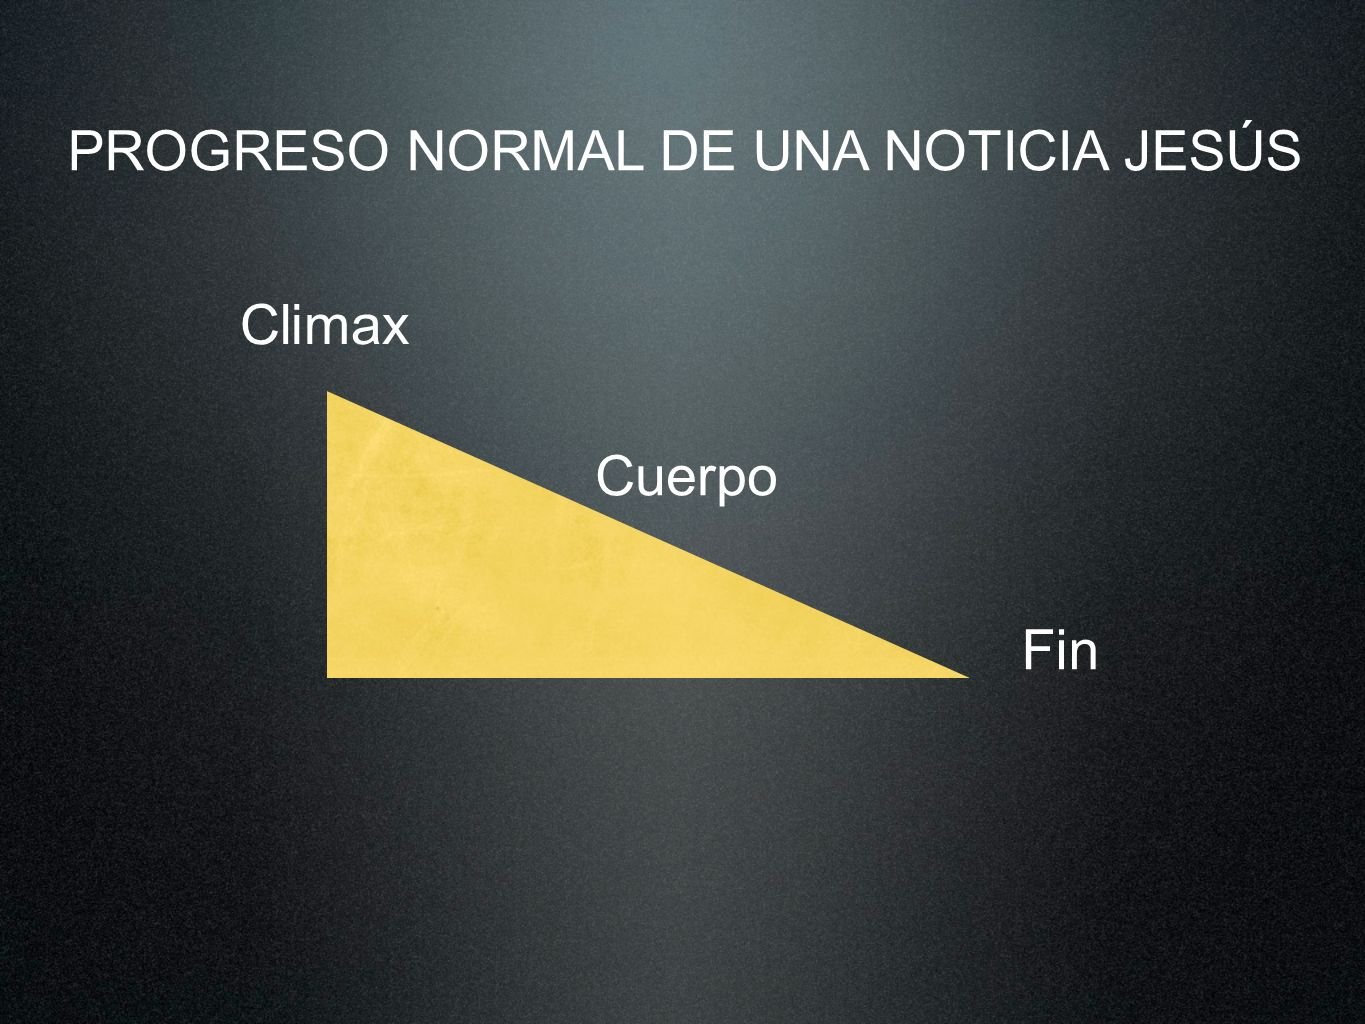 PROGRESO NORMAL DE UNA NOTICIA JESÚS Fin Climax Cuerpo